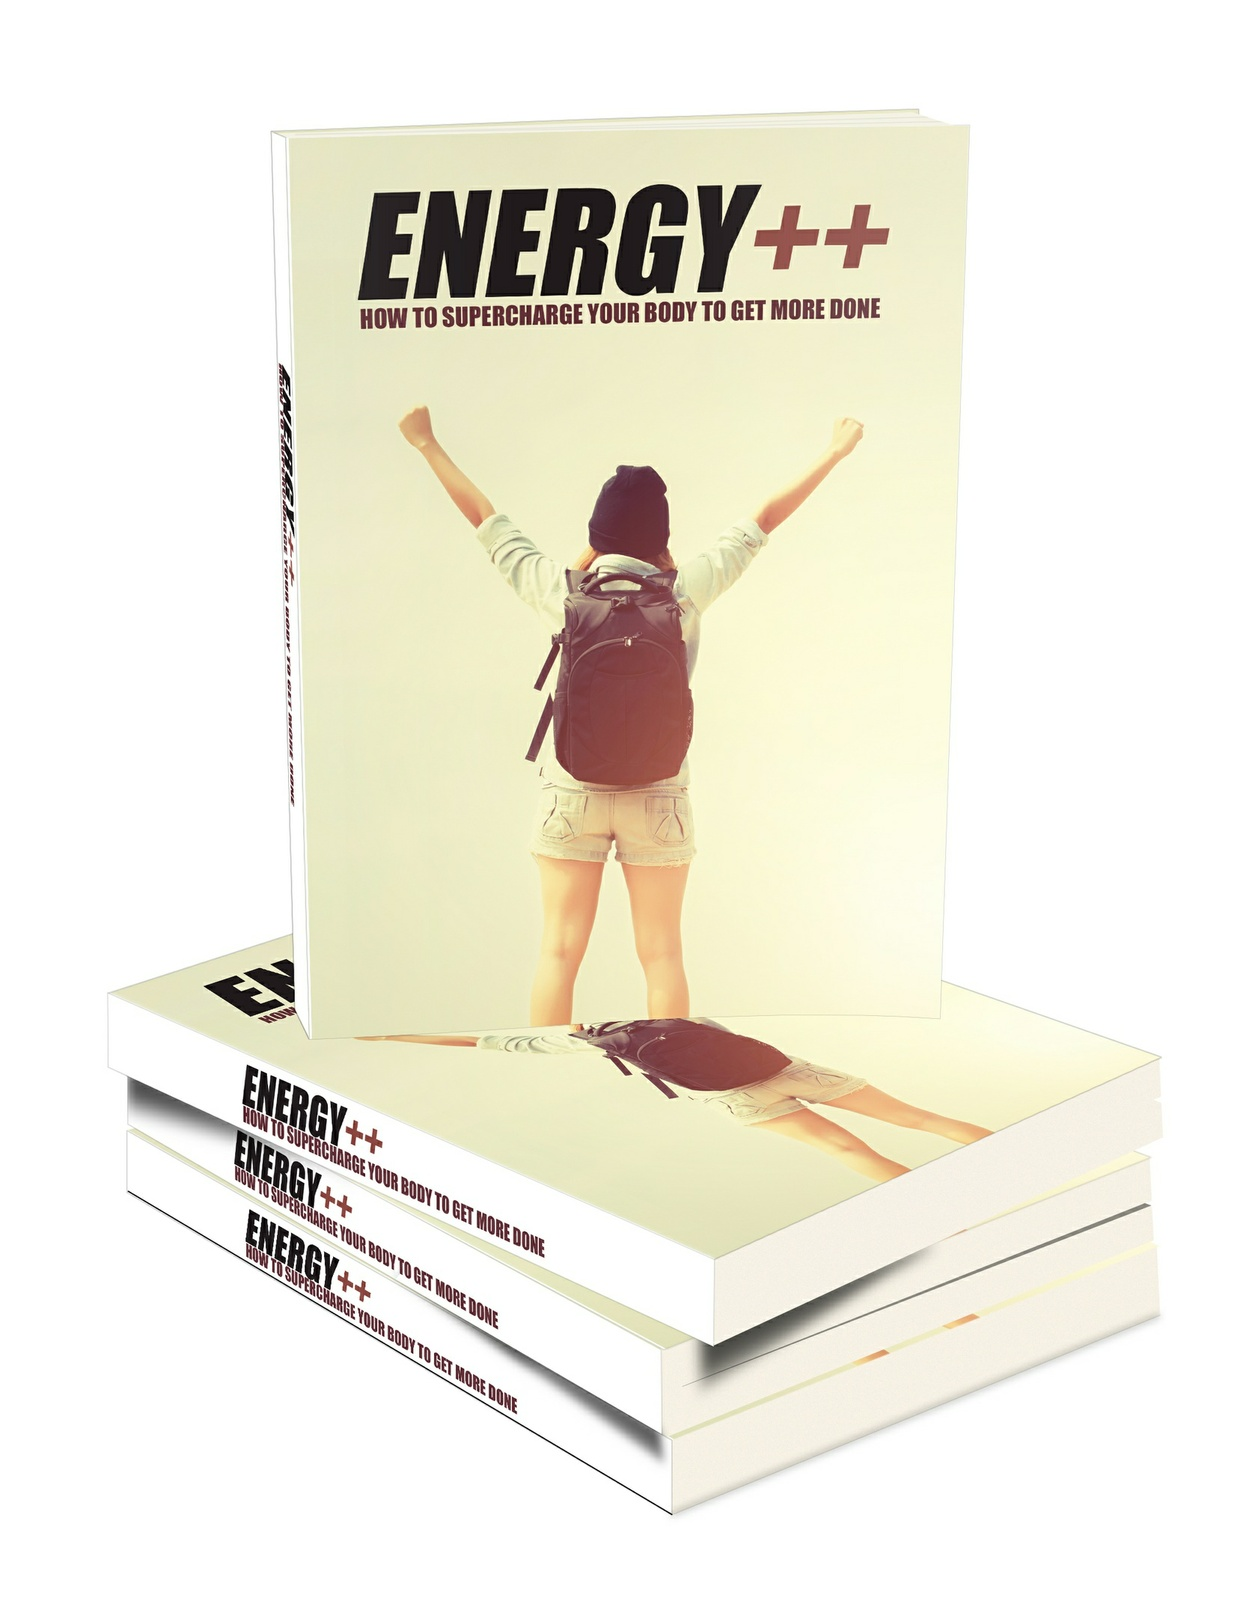 Box Energy++ How to Supercharge Your Body to Get More Done in Audio, Video, Ebook